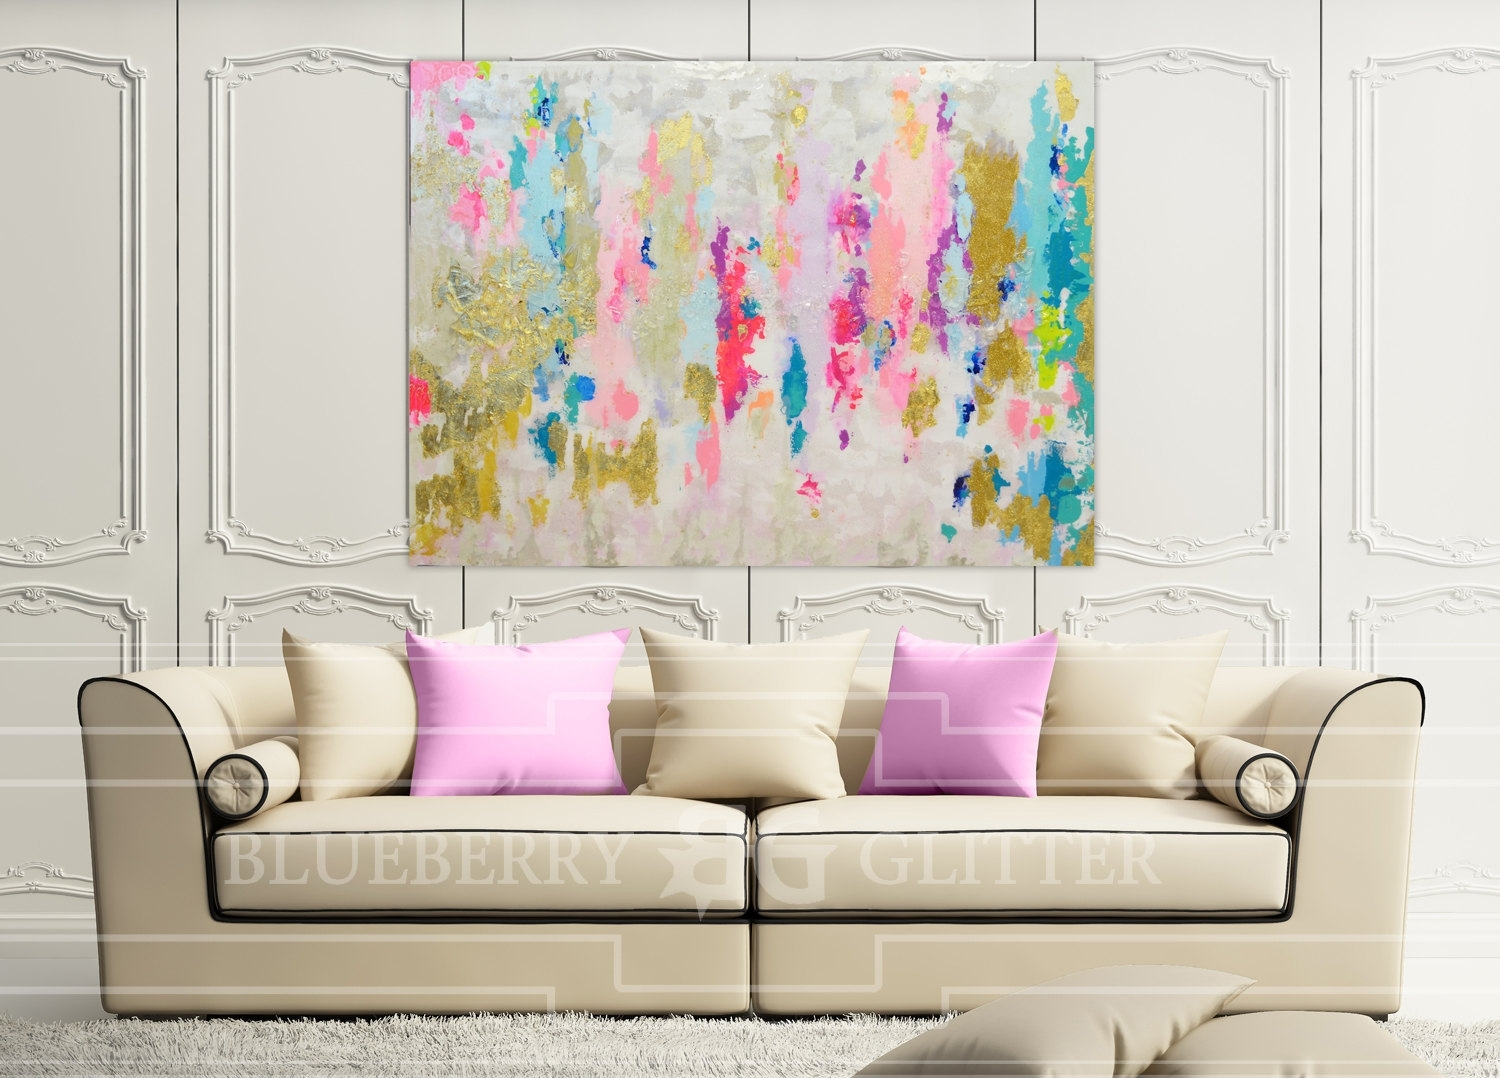 Sold!! Acrylic Abstract Art Large Canvas Painting Gray, Pink Intended For Best And Newest Pink Abstract Wall Art (View 19 of 20)